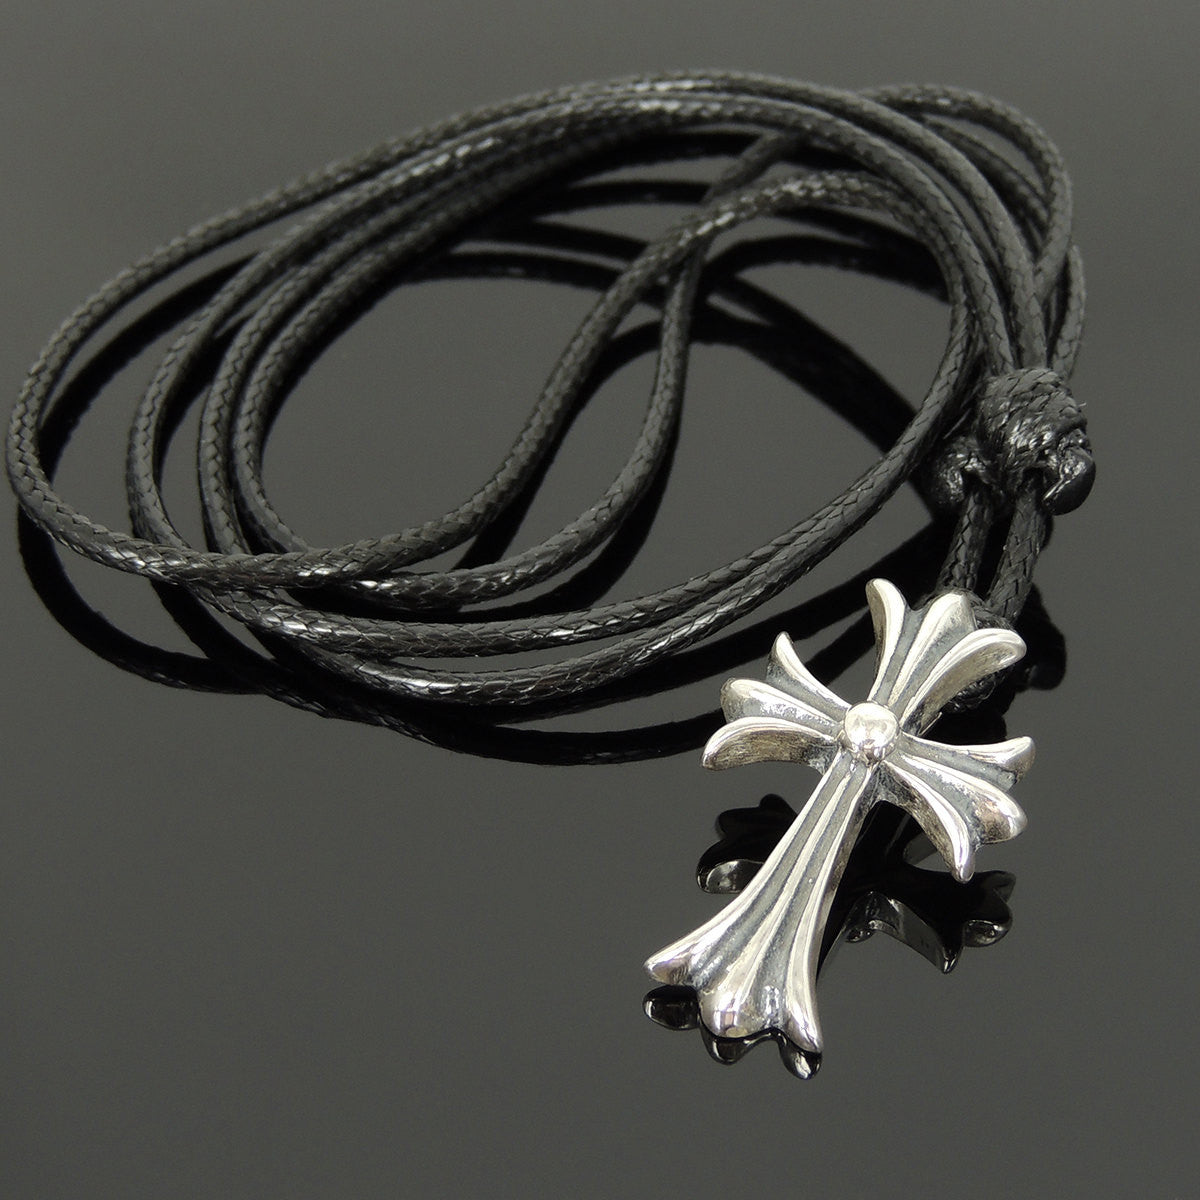 Adjustable Wax Rope Necklace with S925 Sterling Silver Cross Pendant - Handmade by Gem & Silver NK160